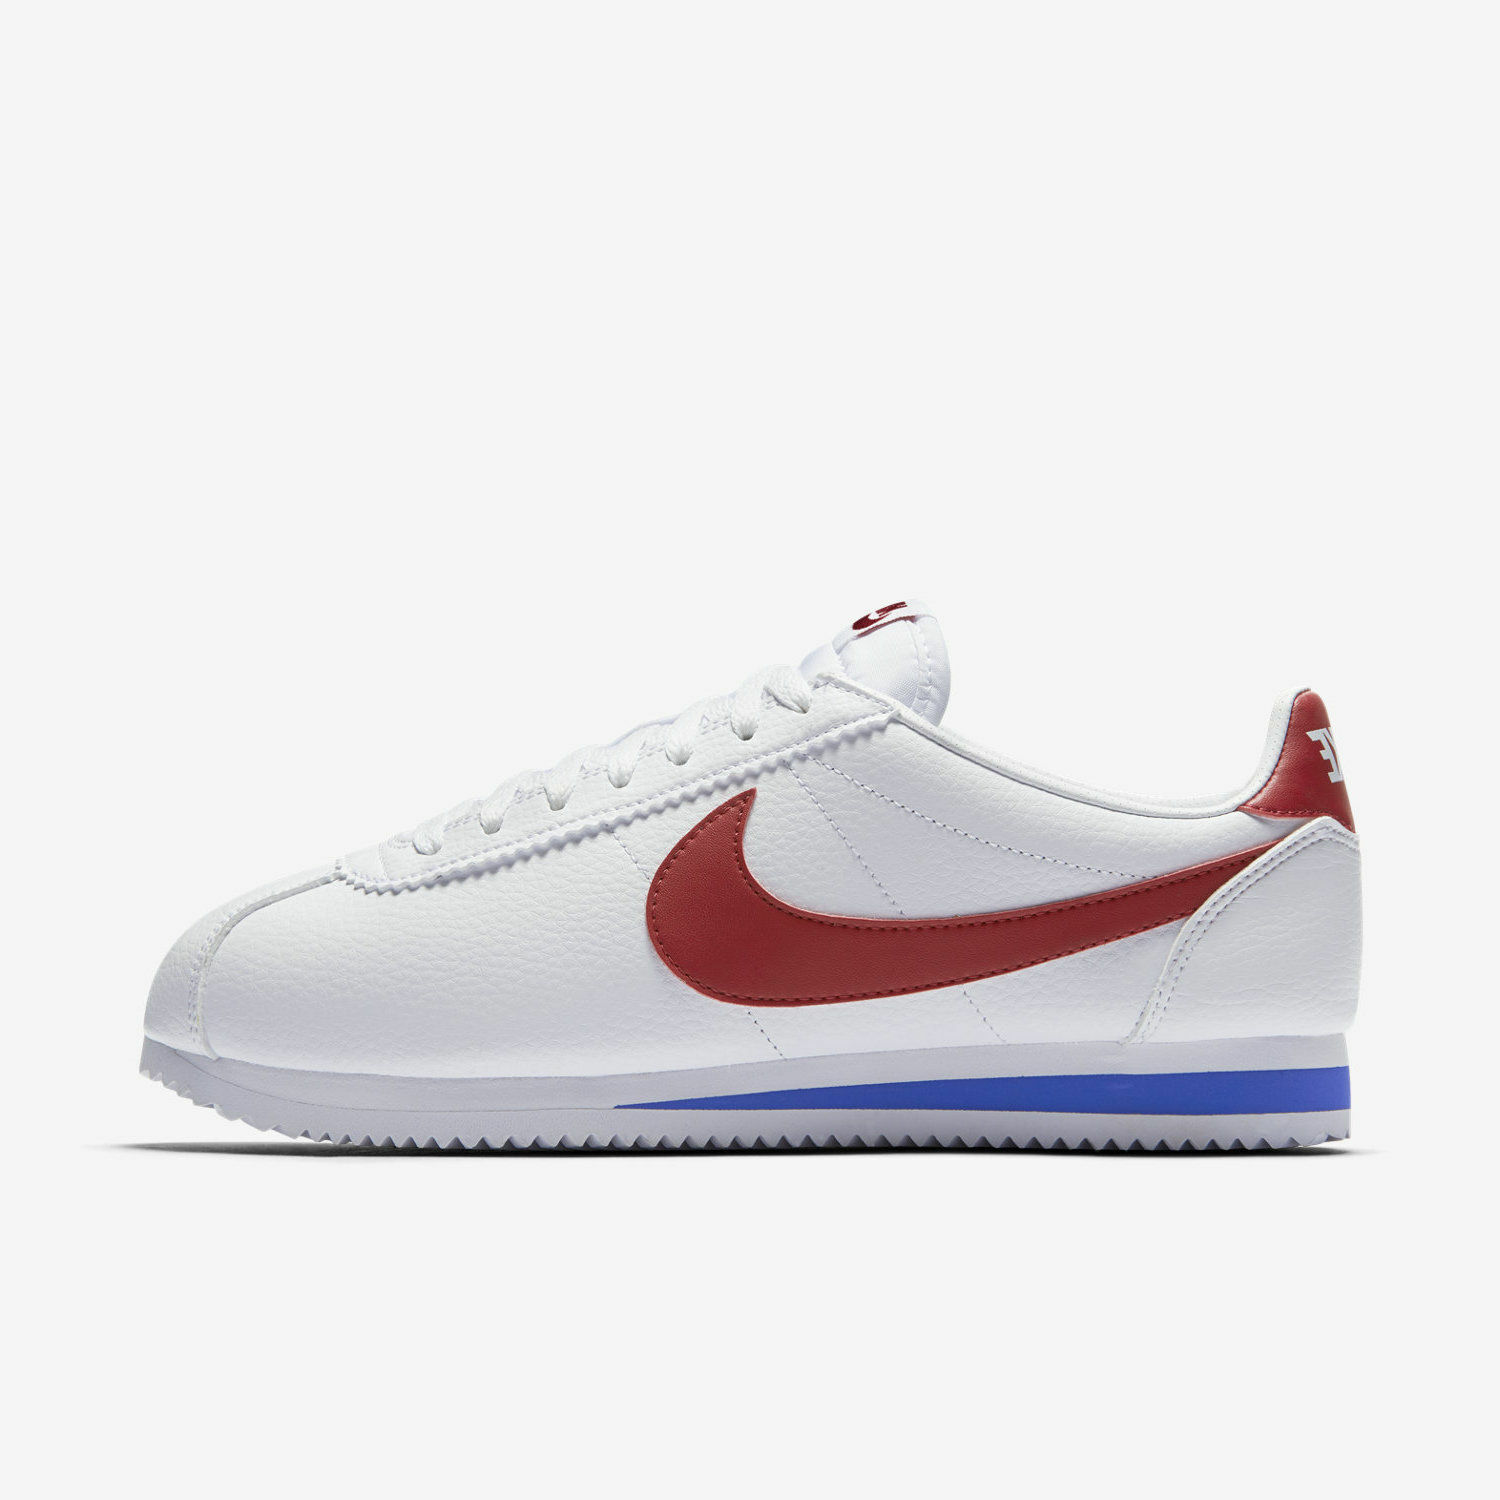 Nike Classic Cortez Leather FORREST GUMP size 749571-154 White red Men size GUMP 8-13 3c33f9